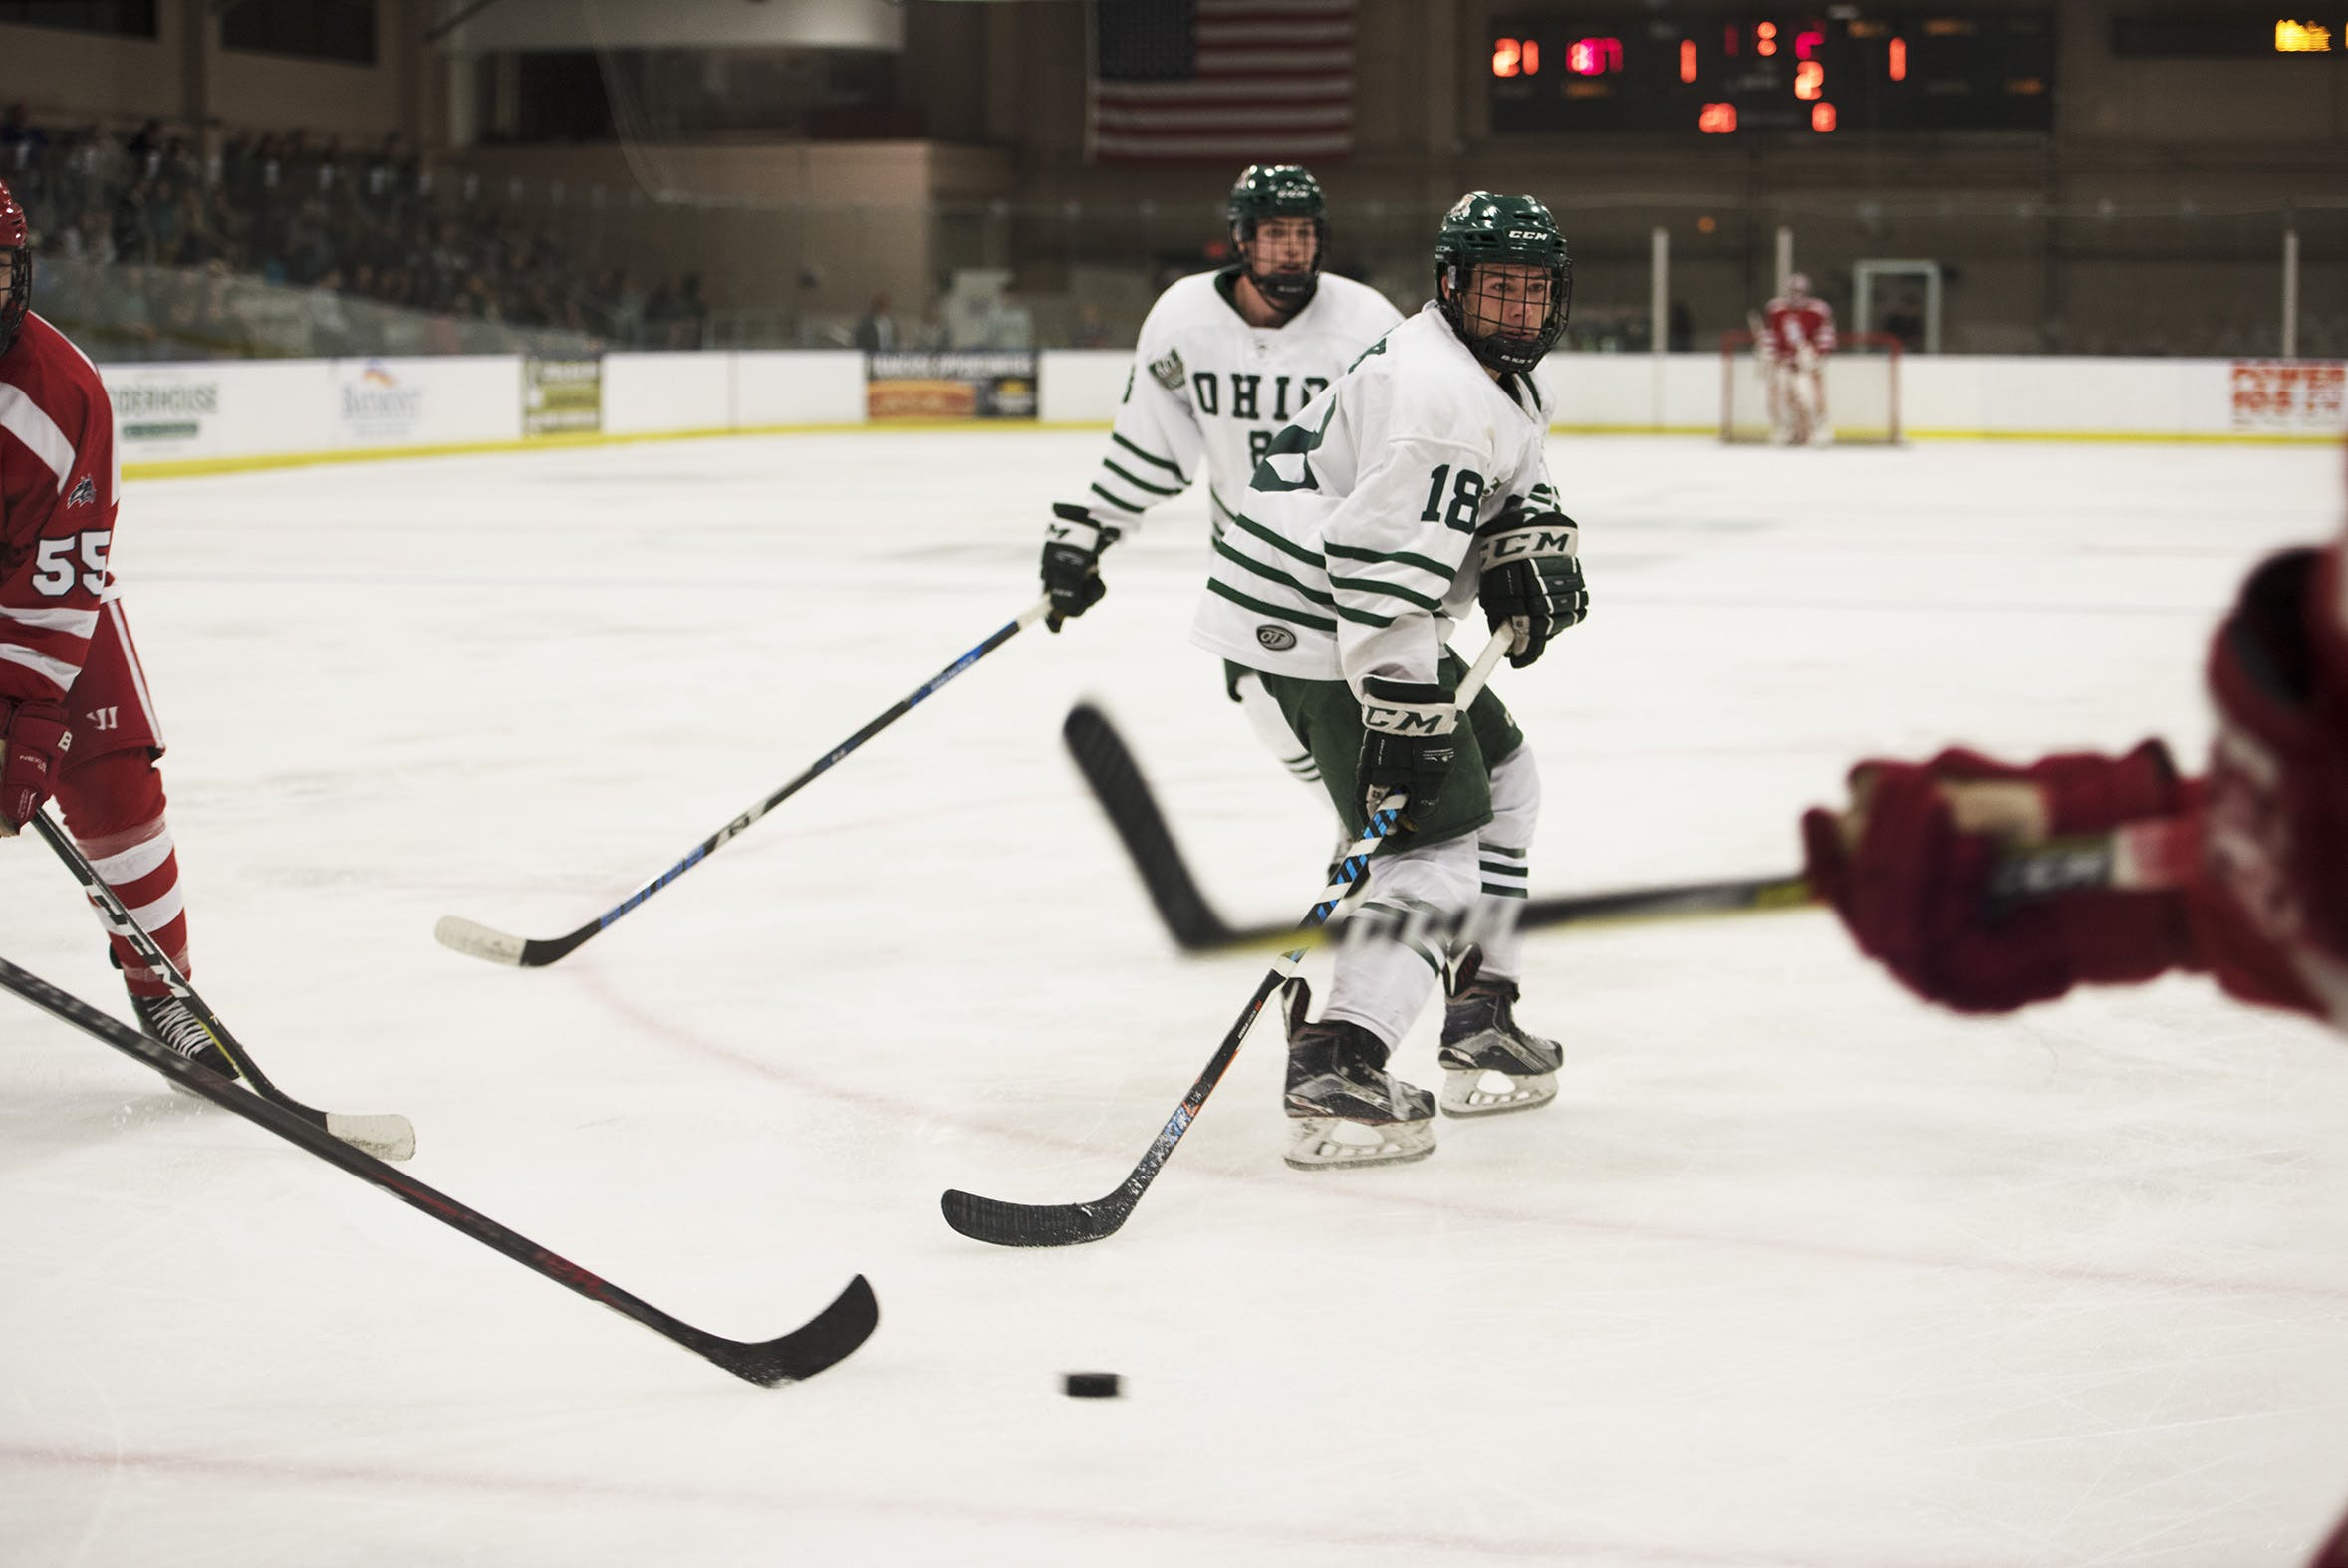 Hockey: In just one weekend, Ohio proved that it can last with short roster